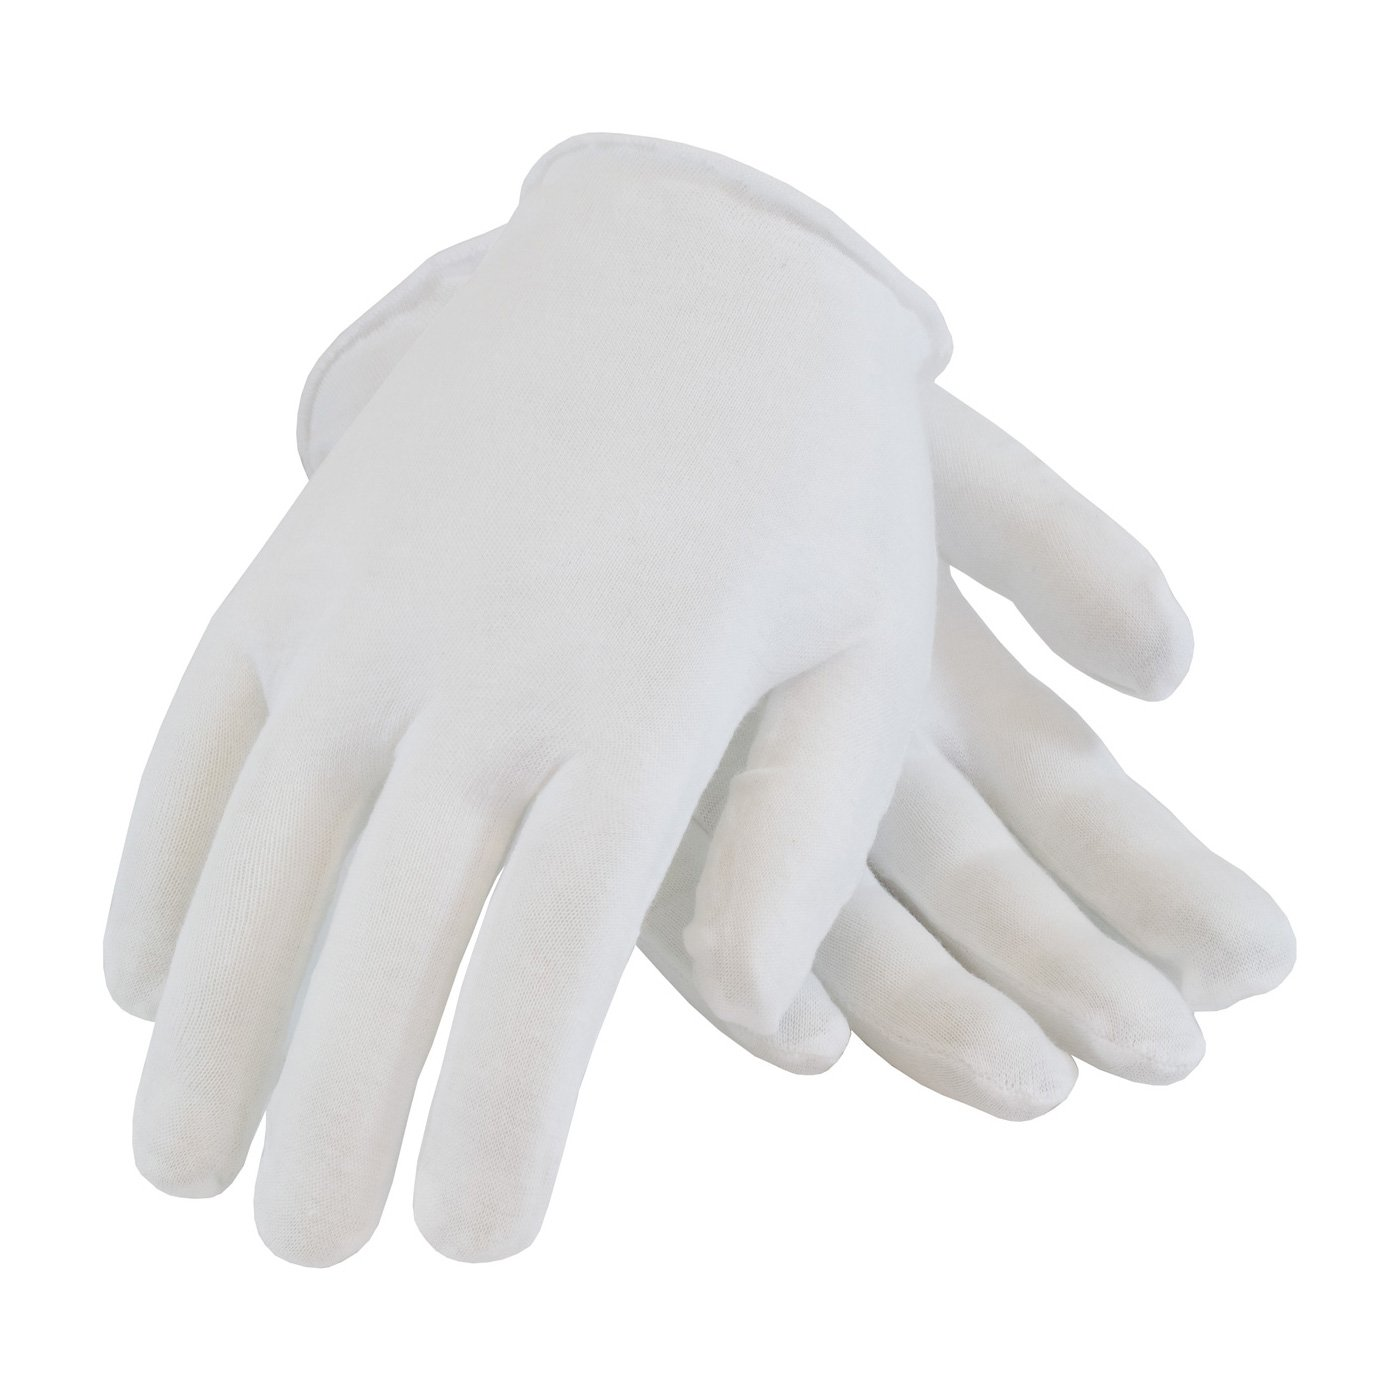 CleanTeam 97-501 Premium, Light Weight Cotton Lisle Inspection Glove with Unhemmed Cuff, Ladies